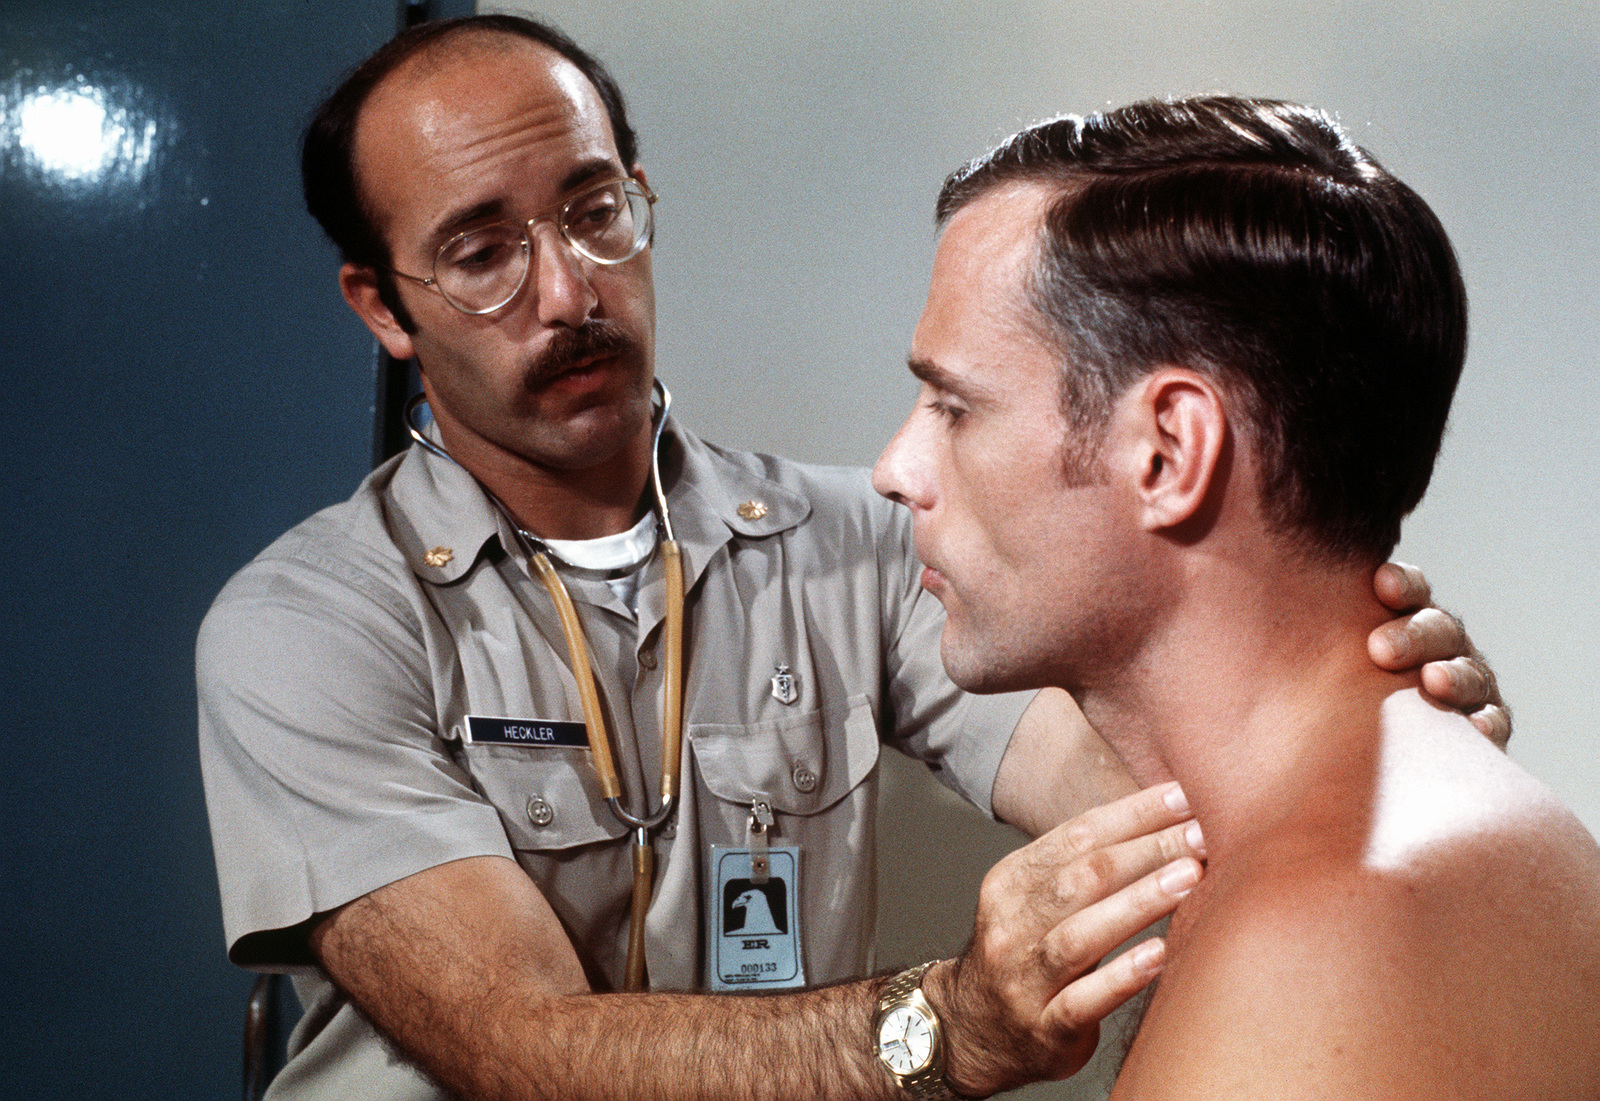 A returnee receives a physical examination at the hospital shortly after being released from a prisoner of war camp in Vietnam